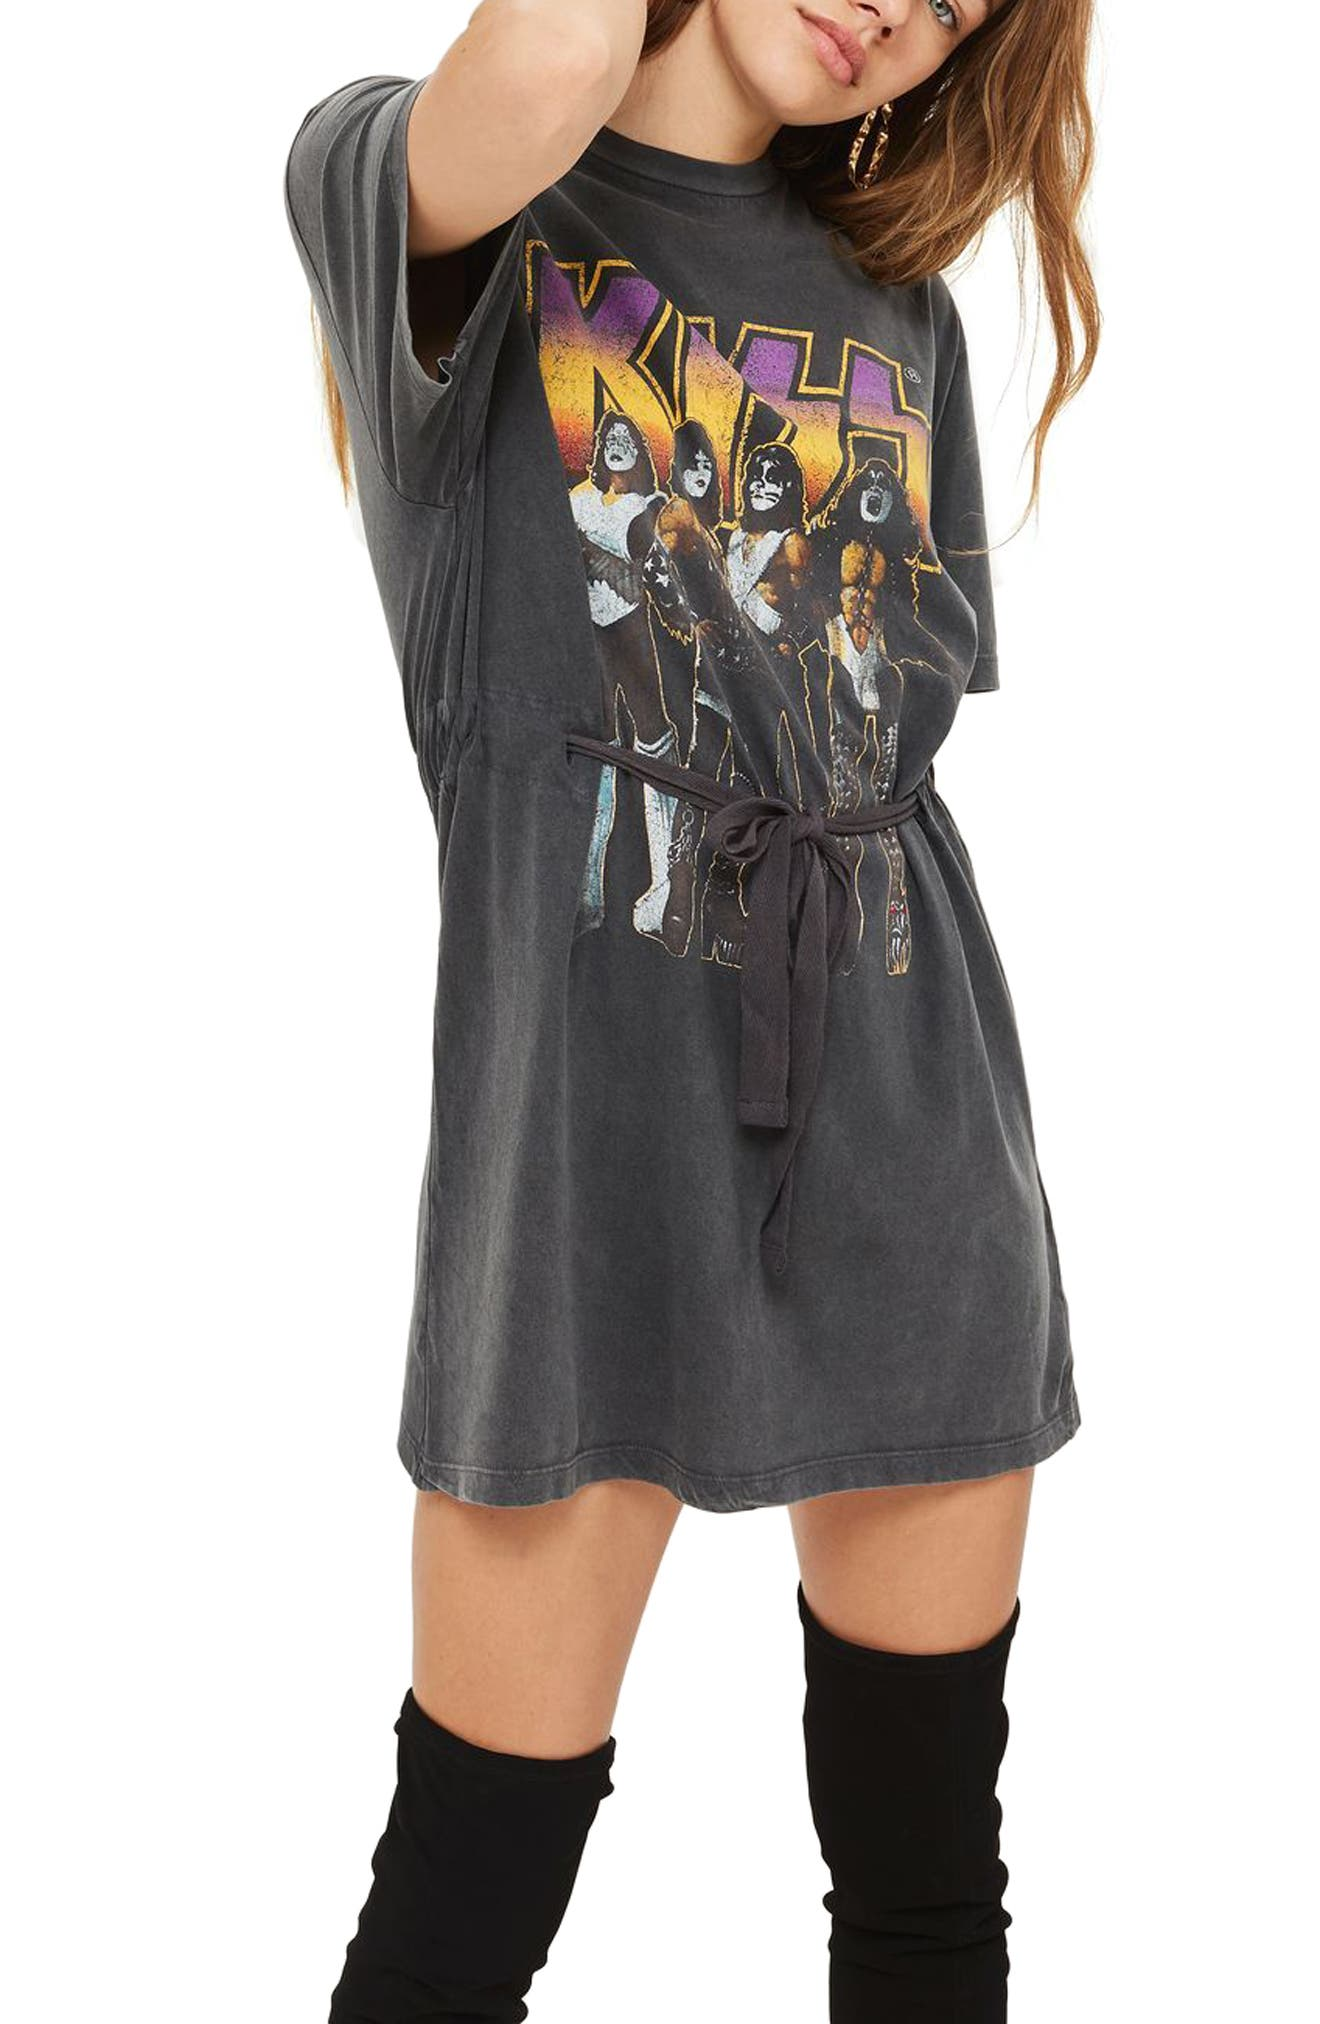 Topshop Kiss Graphic Belted Tunic Dress